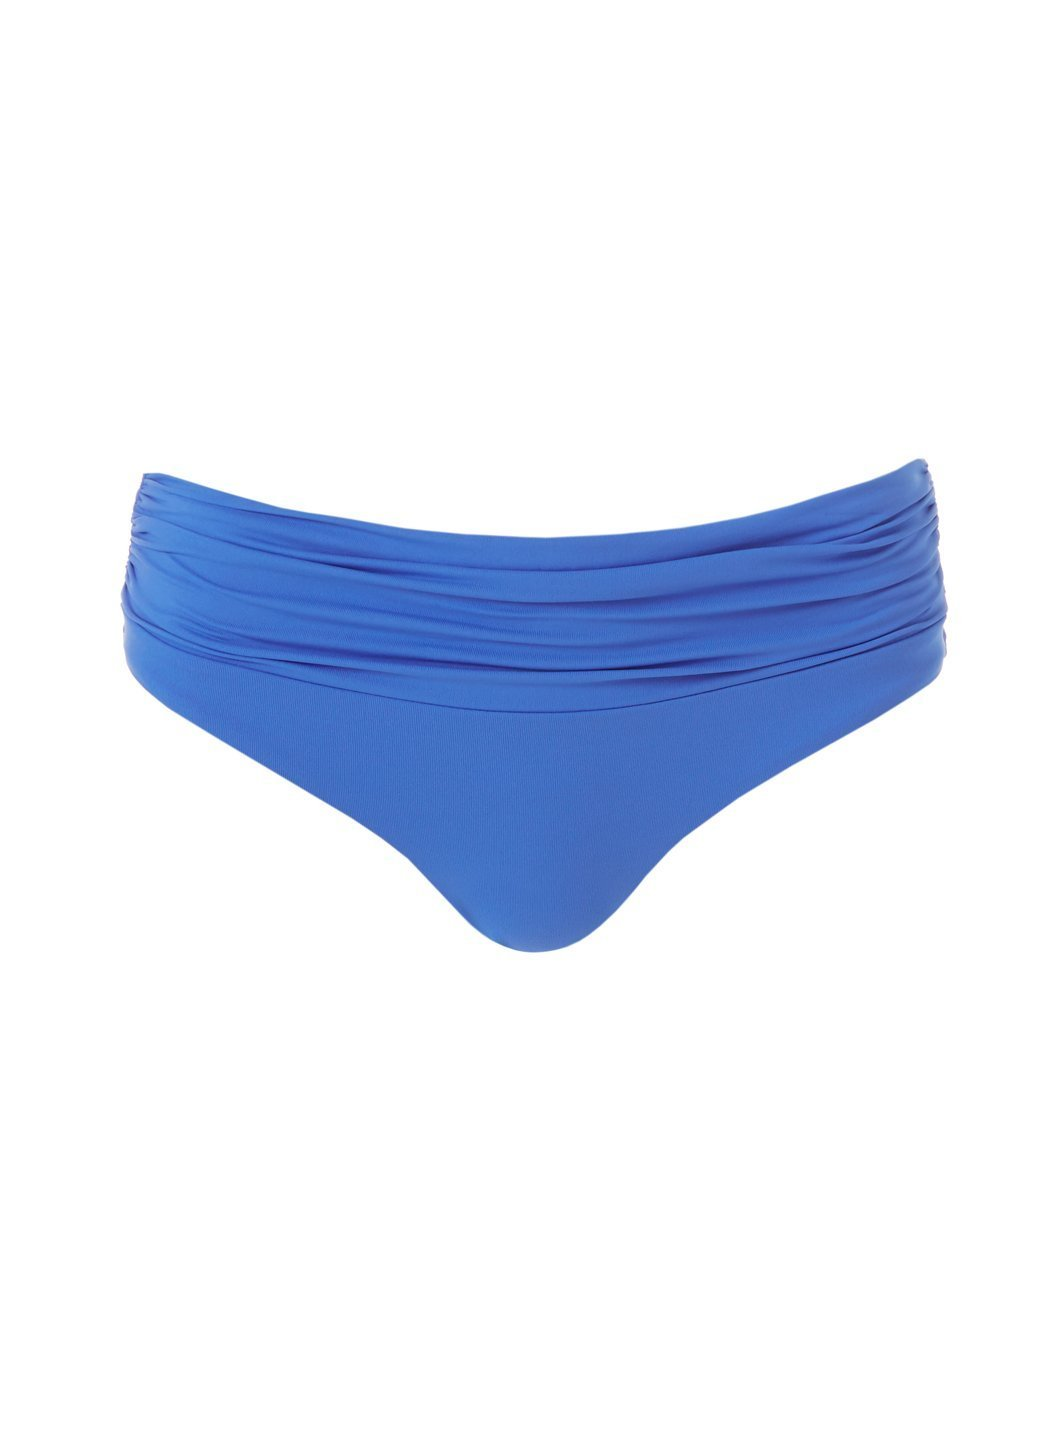 bel-air-royal-blue-bikini-bottom - Cut-Out